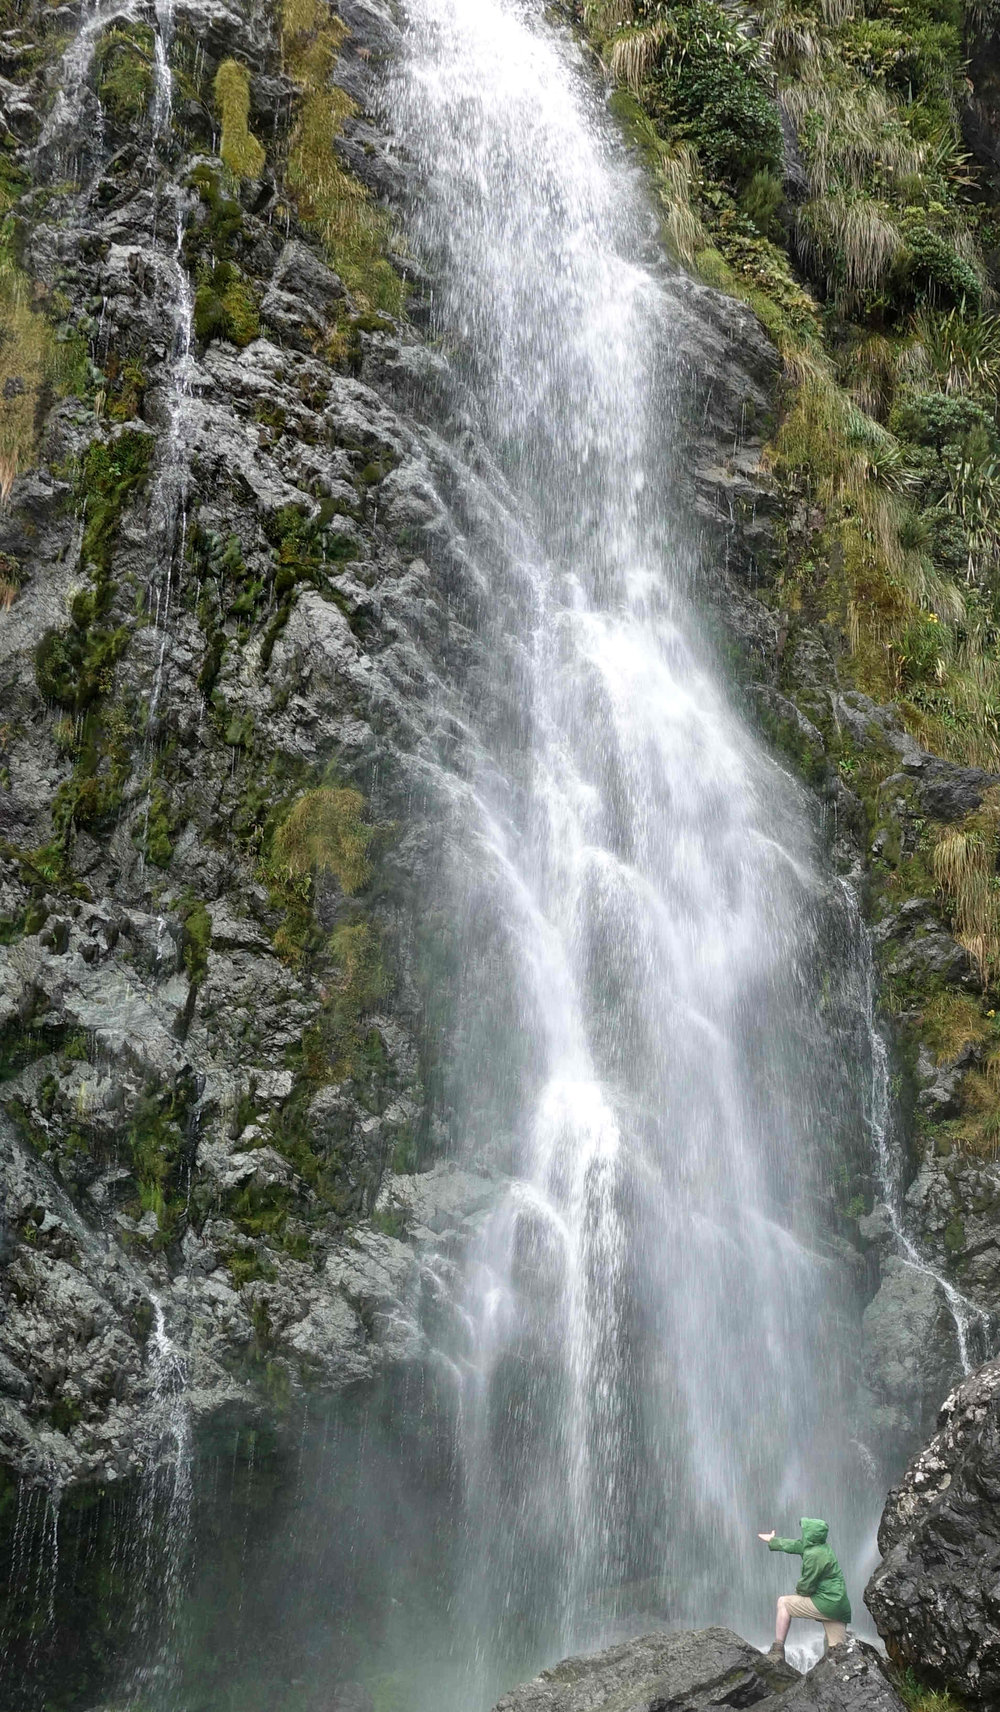 which I of course had to stick my hand into - Earland Falls are 174 meters high.